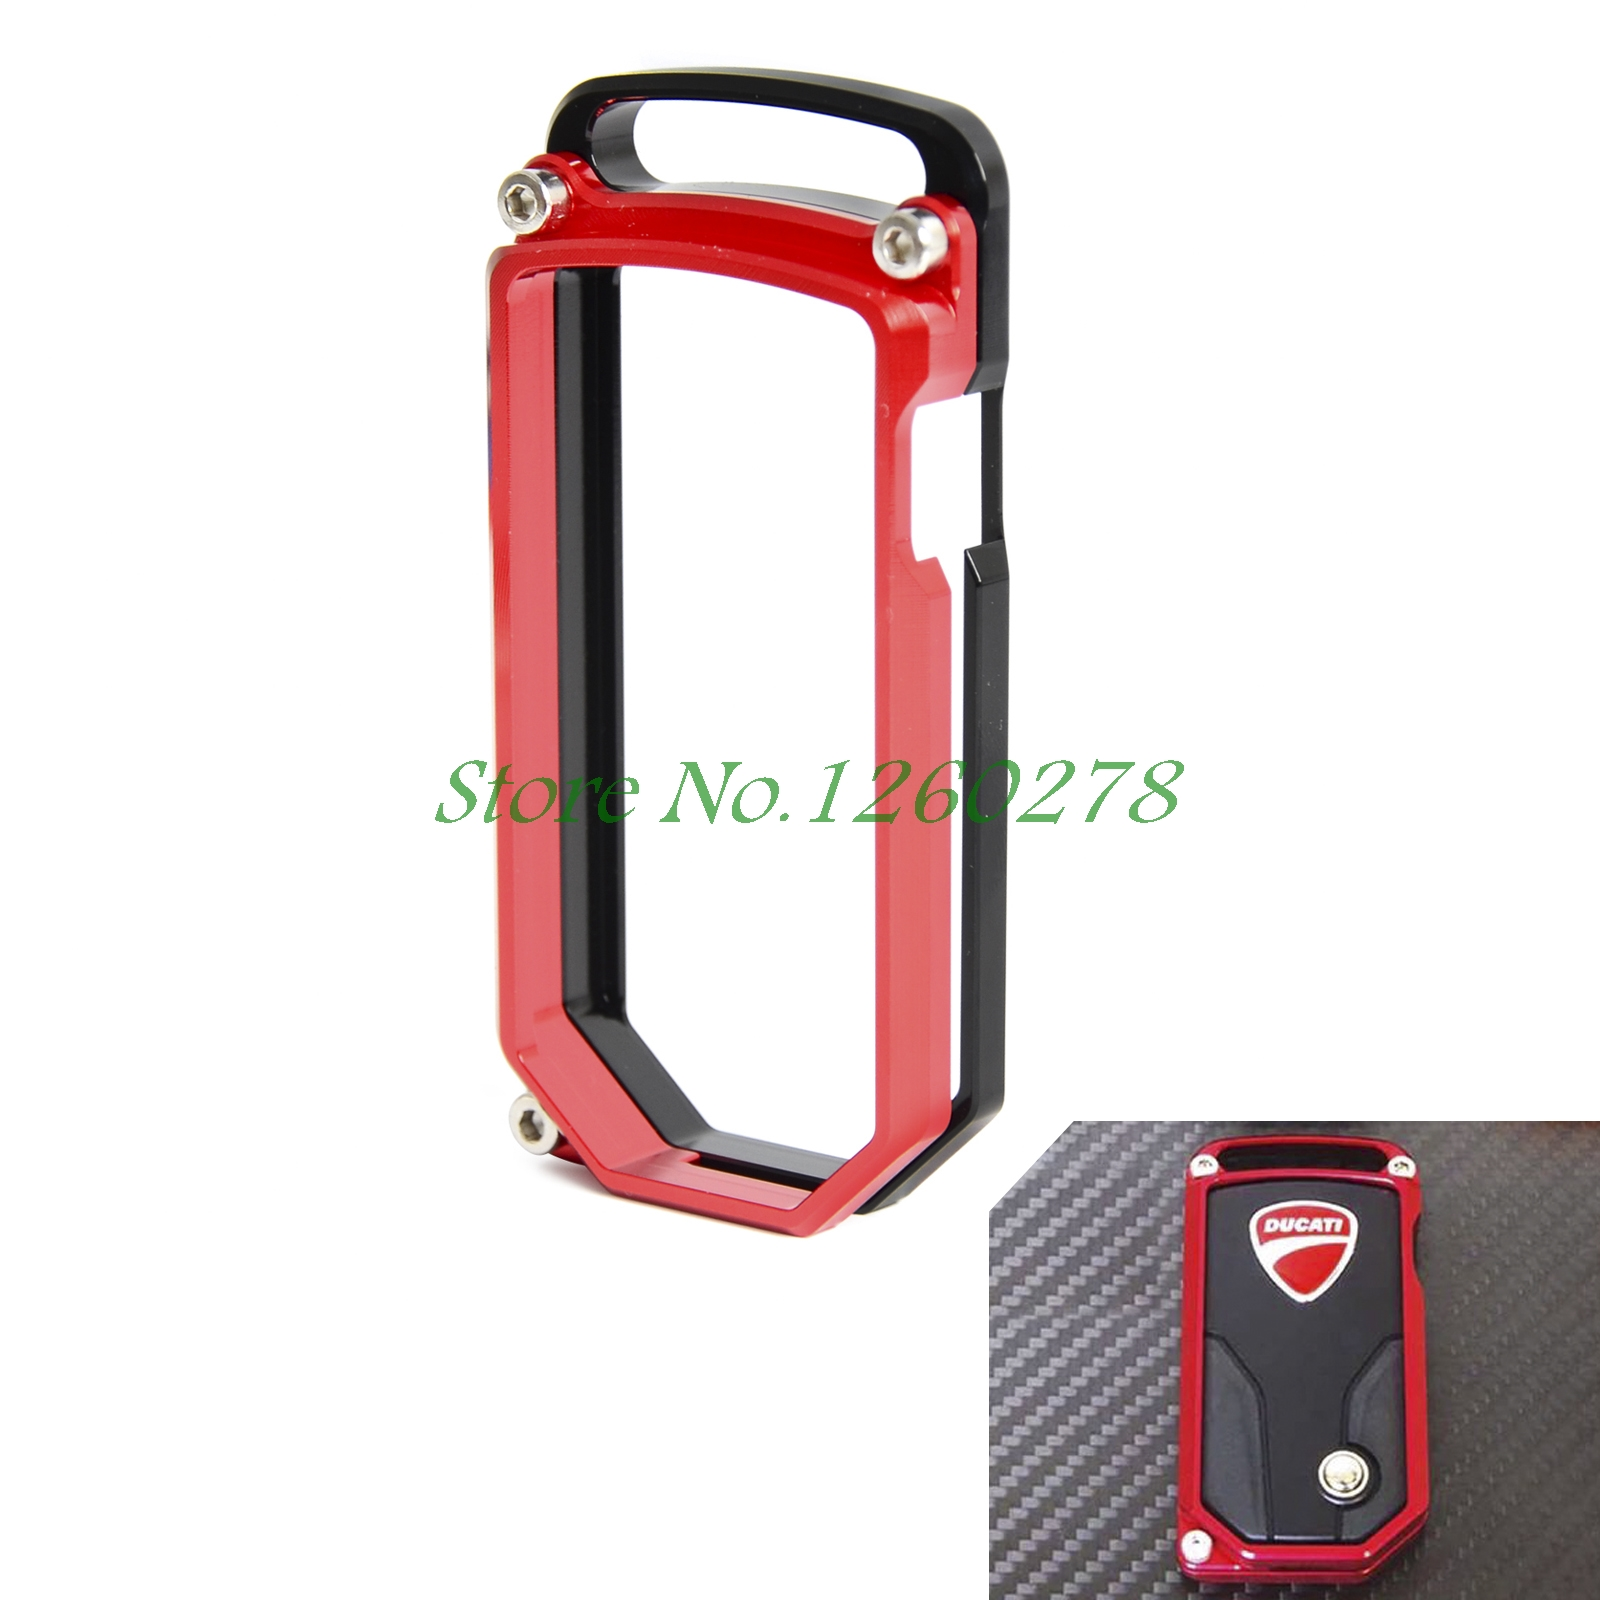 Classic Collocation CNC Key Remote Cover Case Chain For Ducati  Multitrada 1200/1200 S 2010-2016 Diavel 2011-2014 All models cnc key case smart key cover for ducati diavel 2011 2016 multitrada 1200 1200s mts1200 2010 2014 new